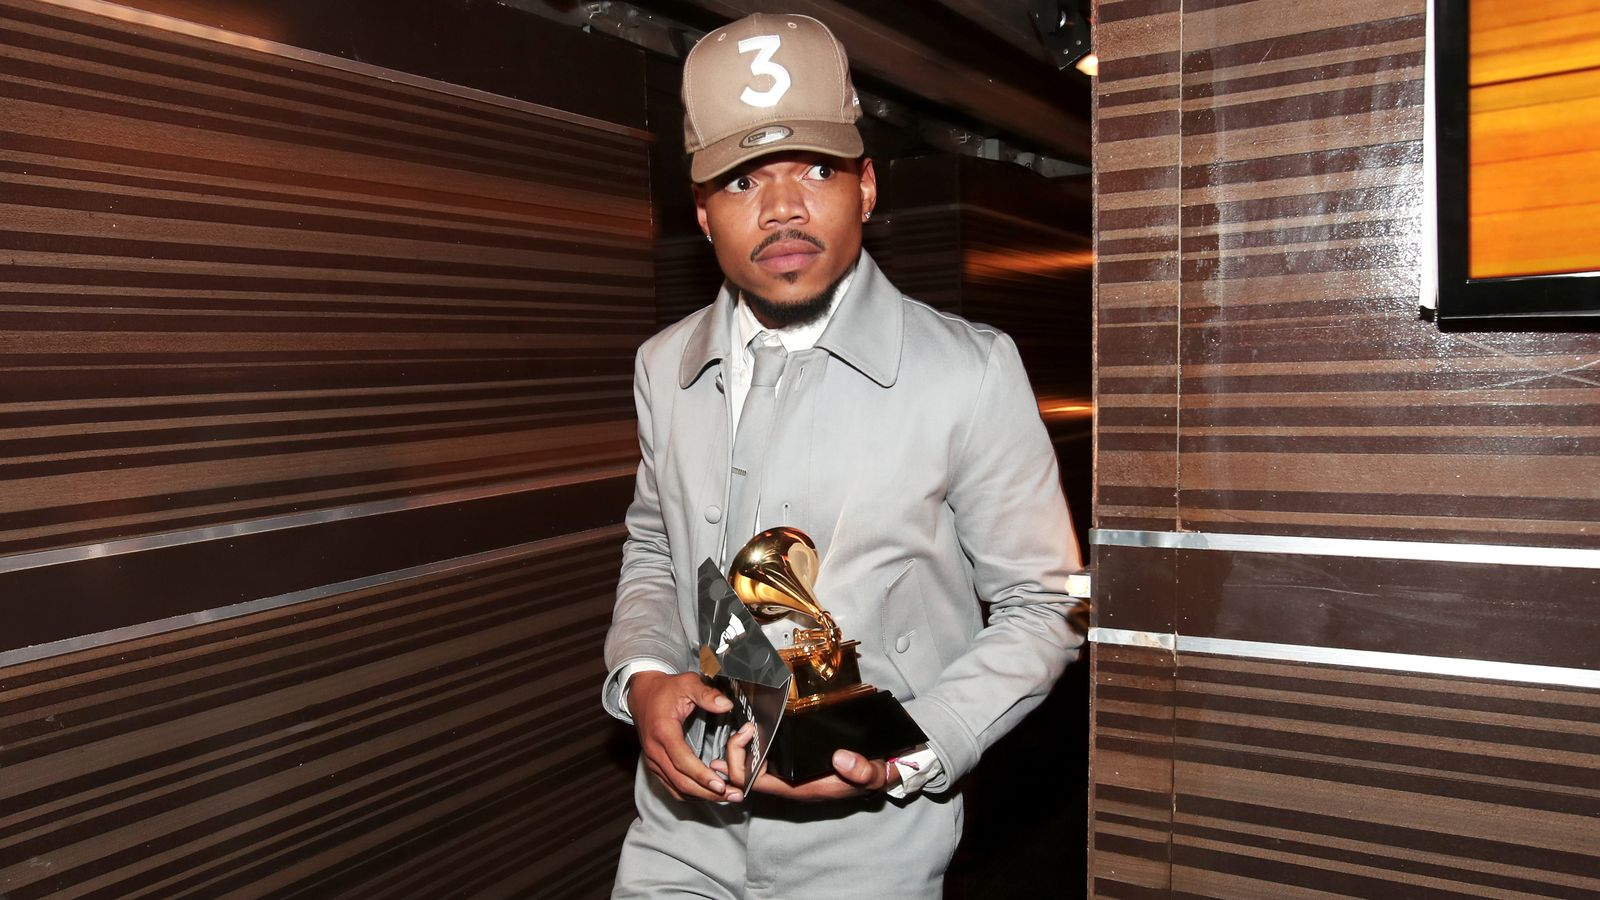 The coloring book grammy - Chance The Rapper Shouts Out Soundcloud In Grammys Acceptance Speech The Verge